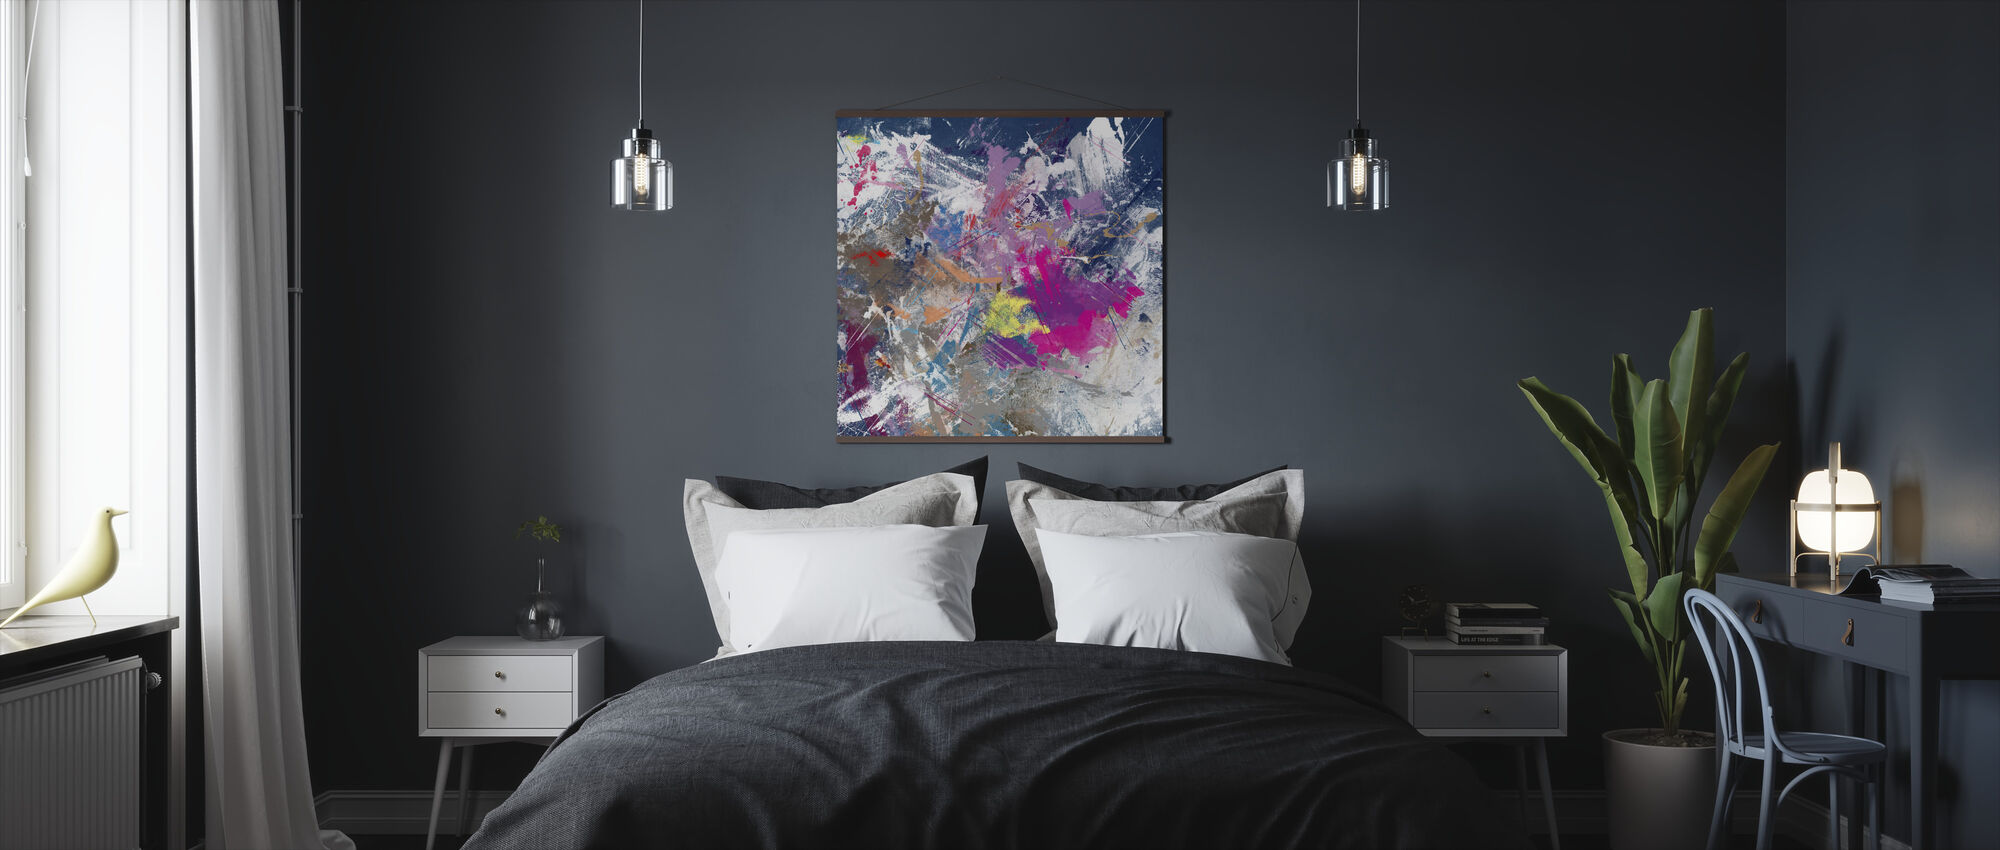 Grunge Color Explotion - Poster - Bedroom